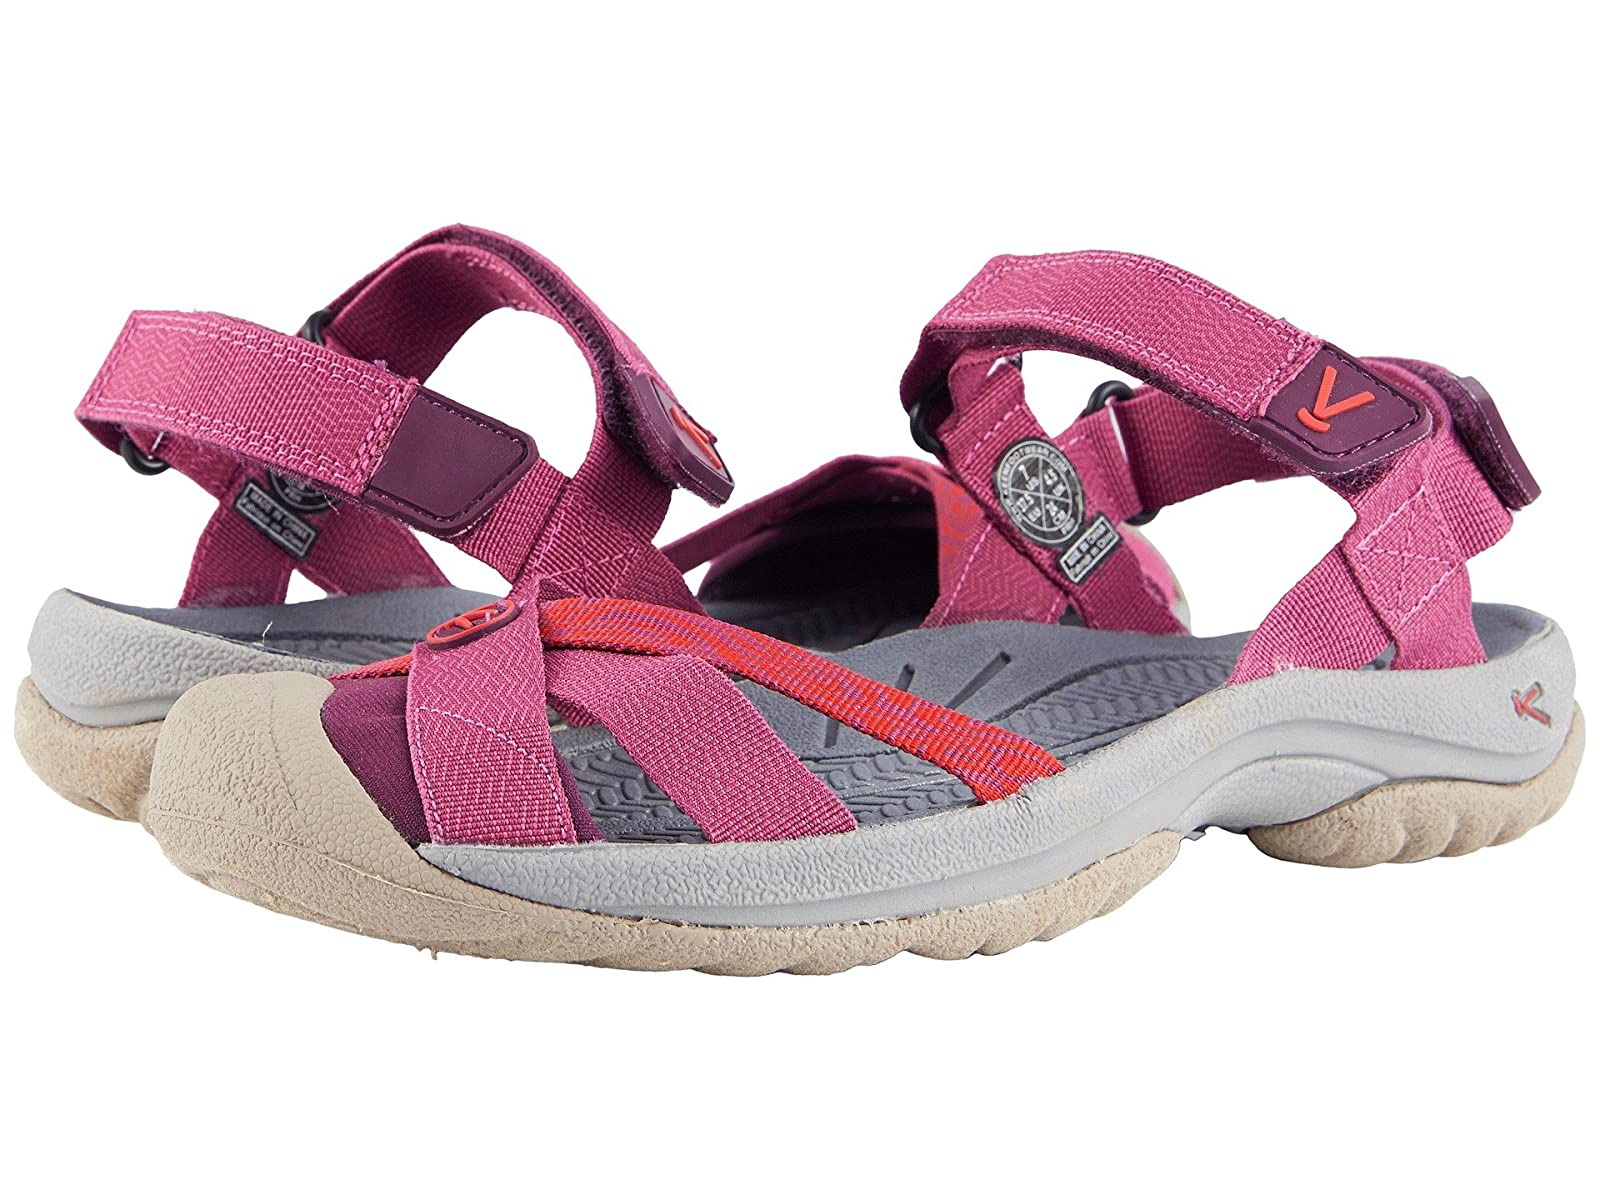 Keen Bali StrapAtmospheric grades have affordable shoes